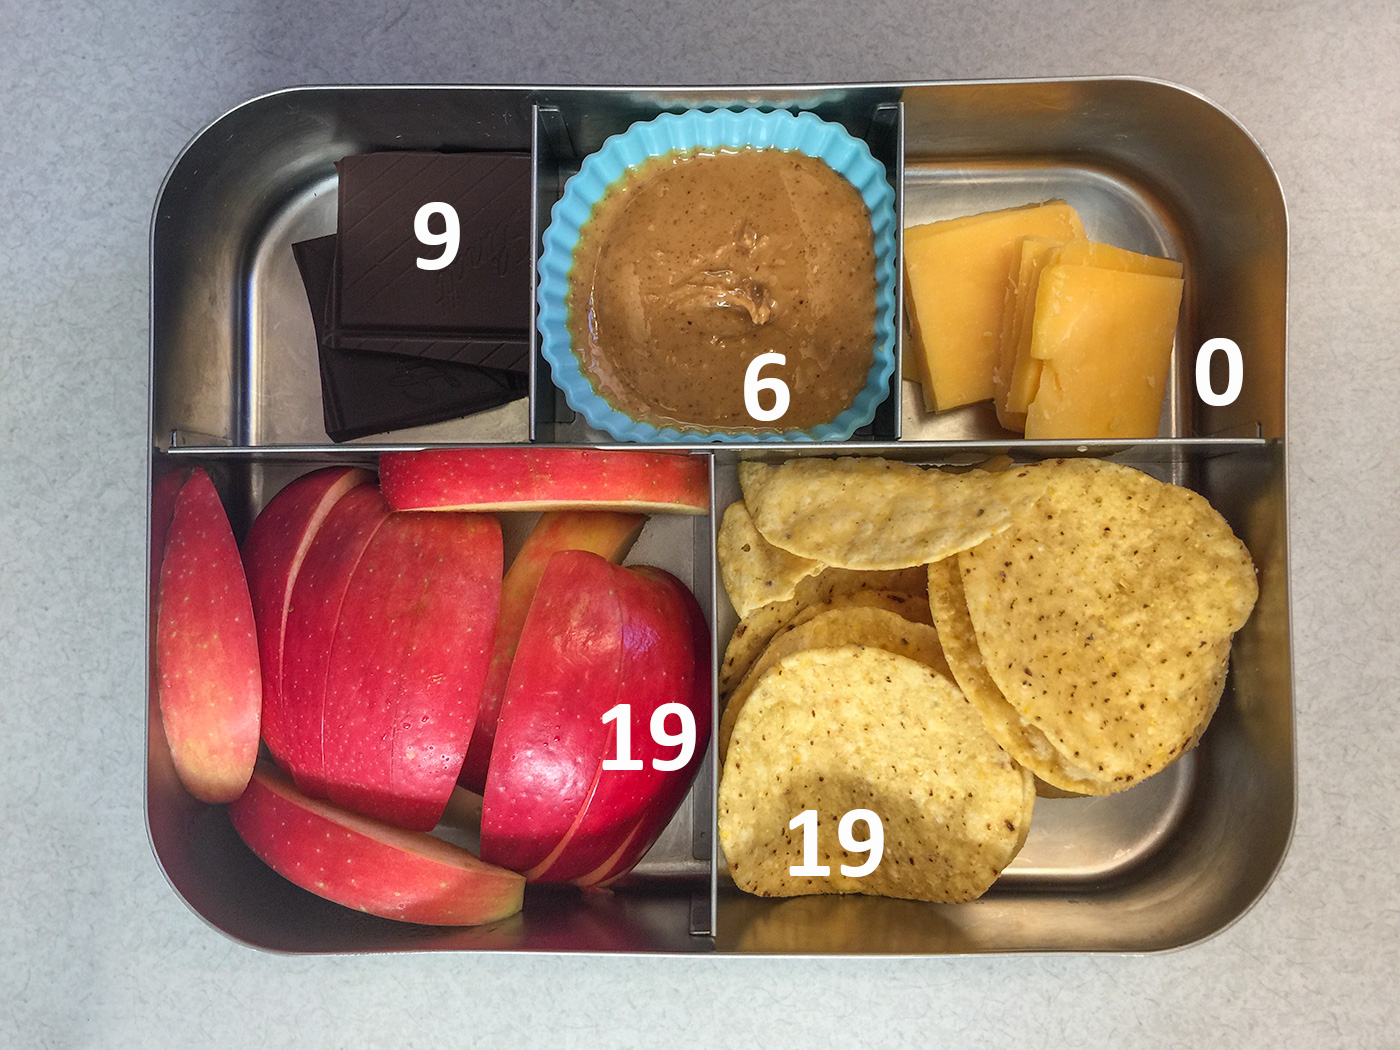 Chips and cheese bento with carbohydrate